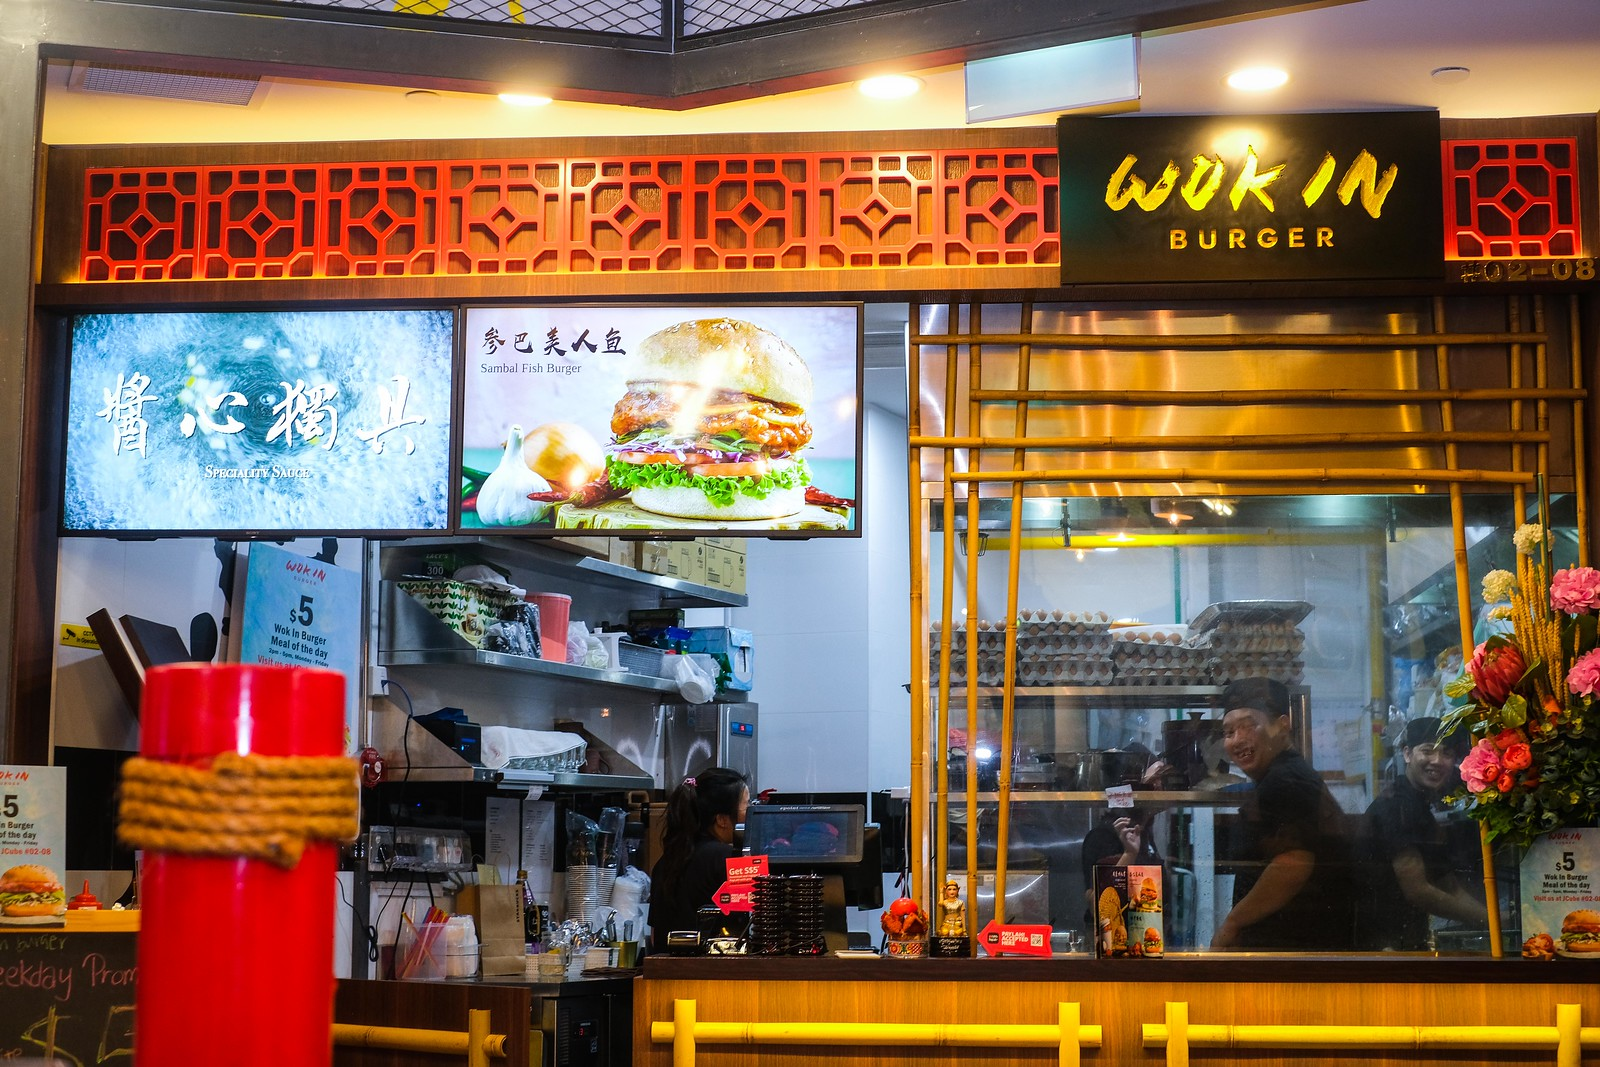 Wok In Burger – Perfect Union of Your Favourite Zi Char dishes & Burgers